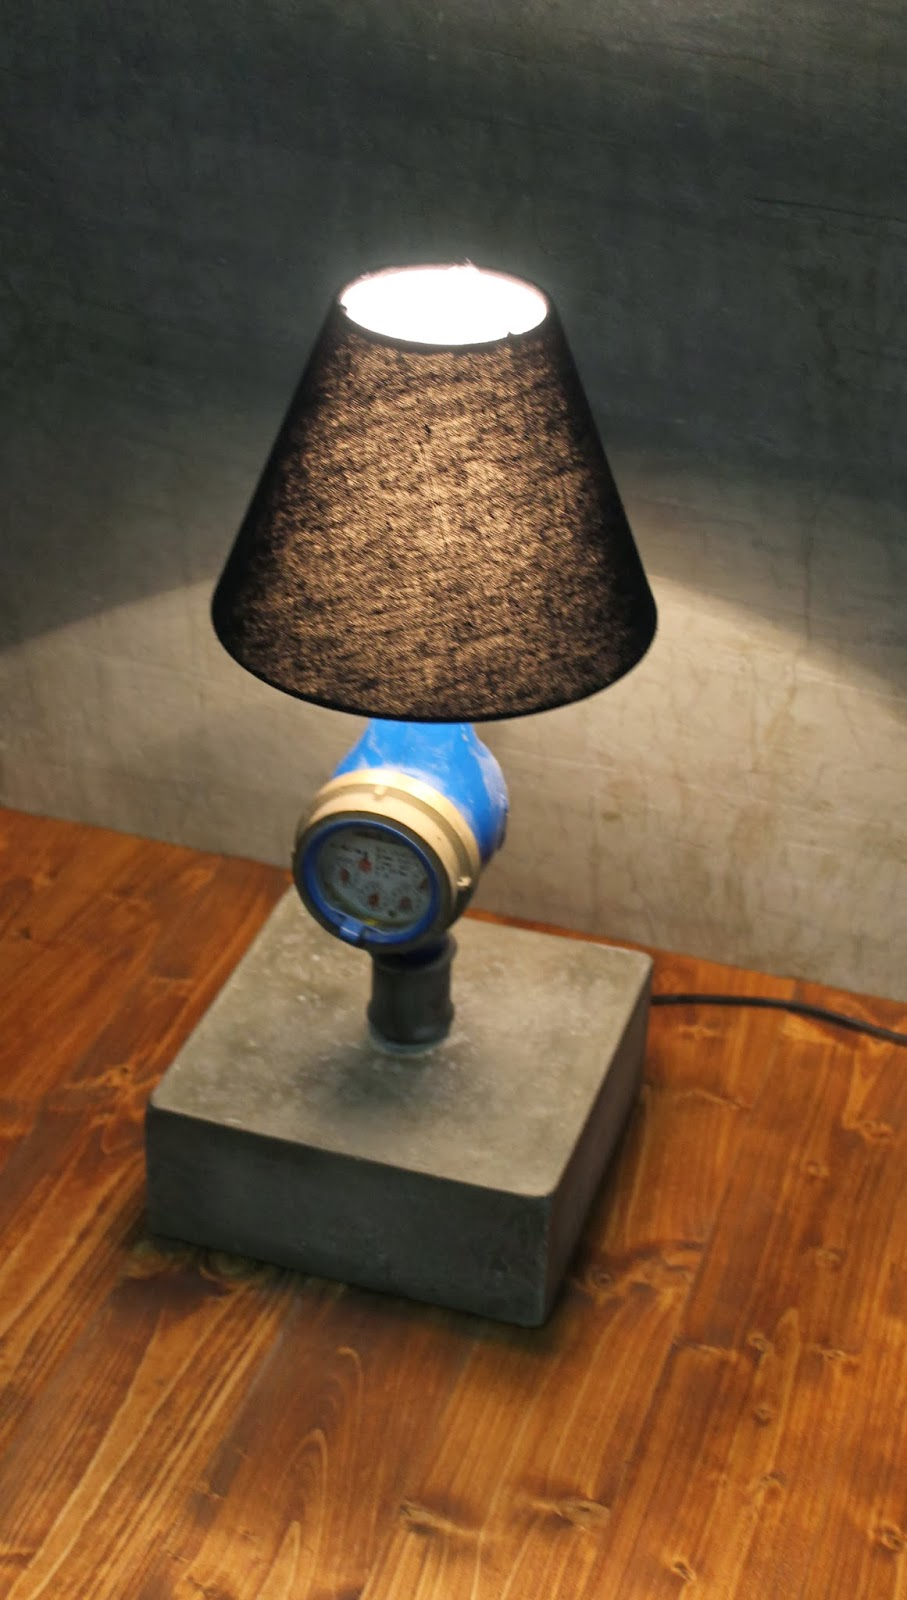 industrial style beton lampe temperguss wasseruhr watermeter. Black Bedroom Furniture Sets. Home Design Ideas